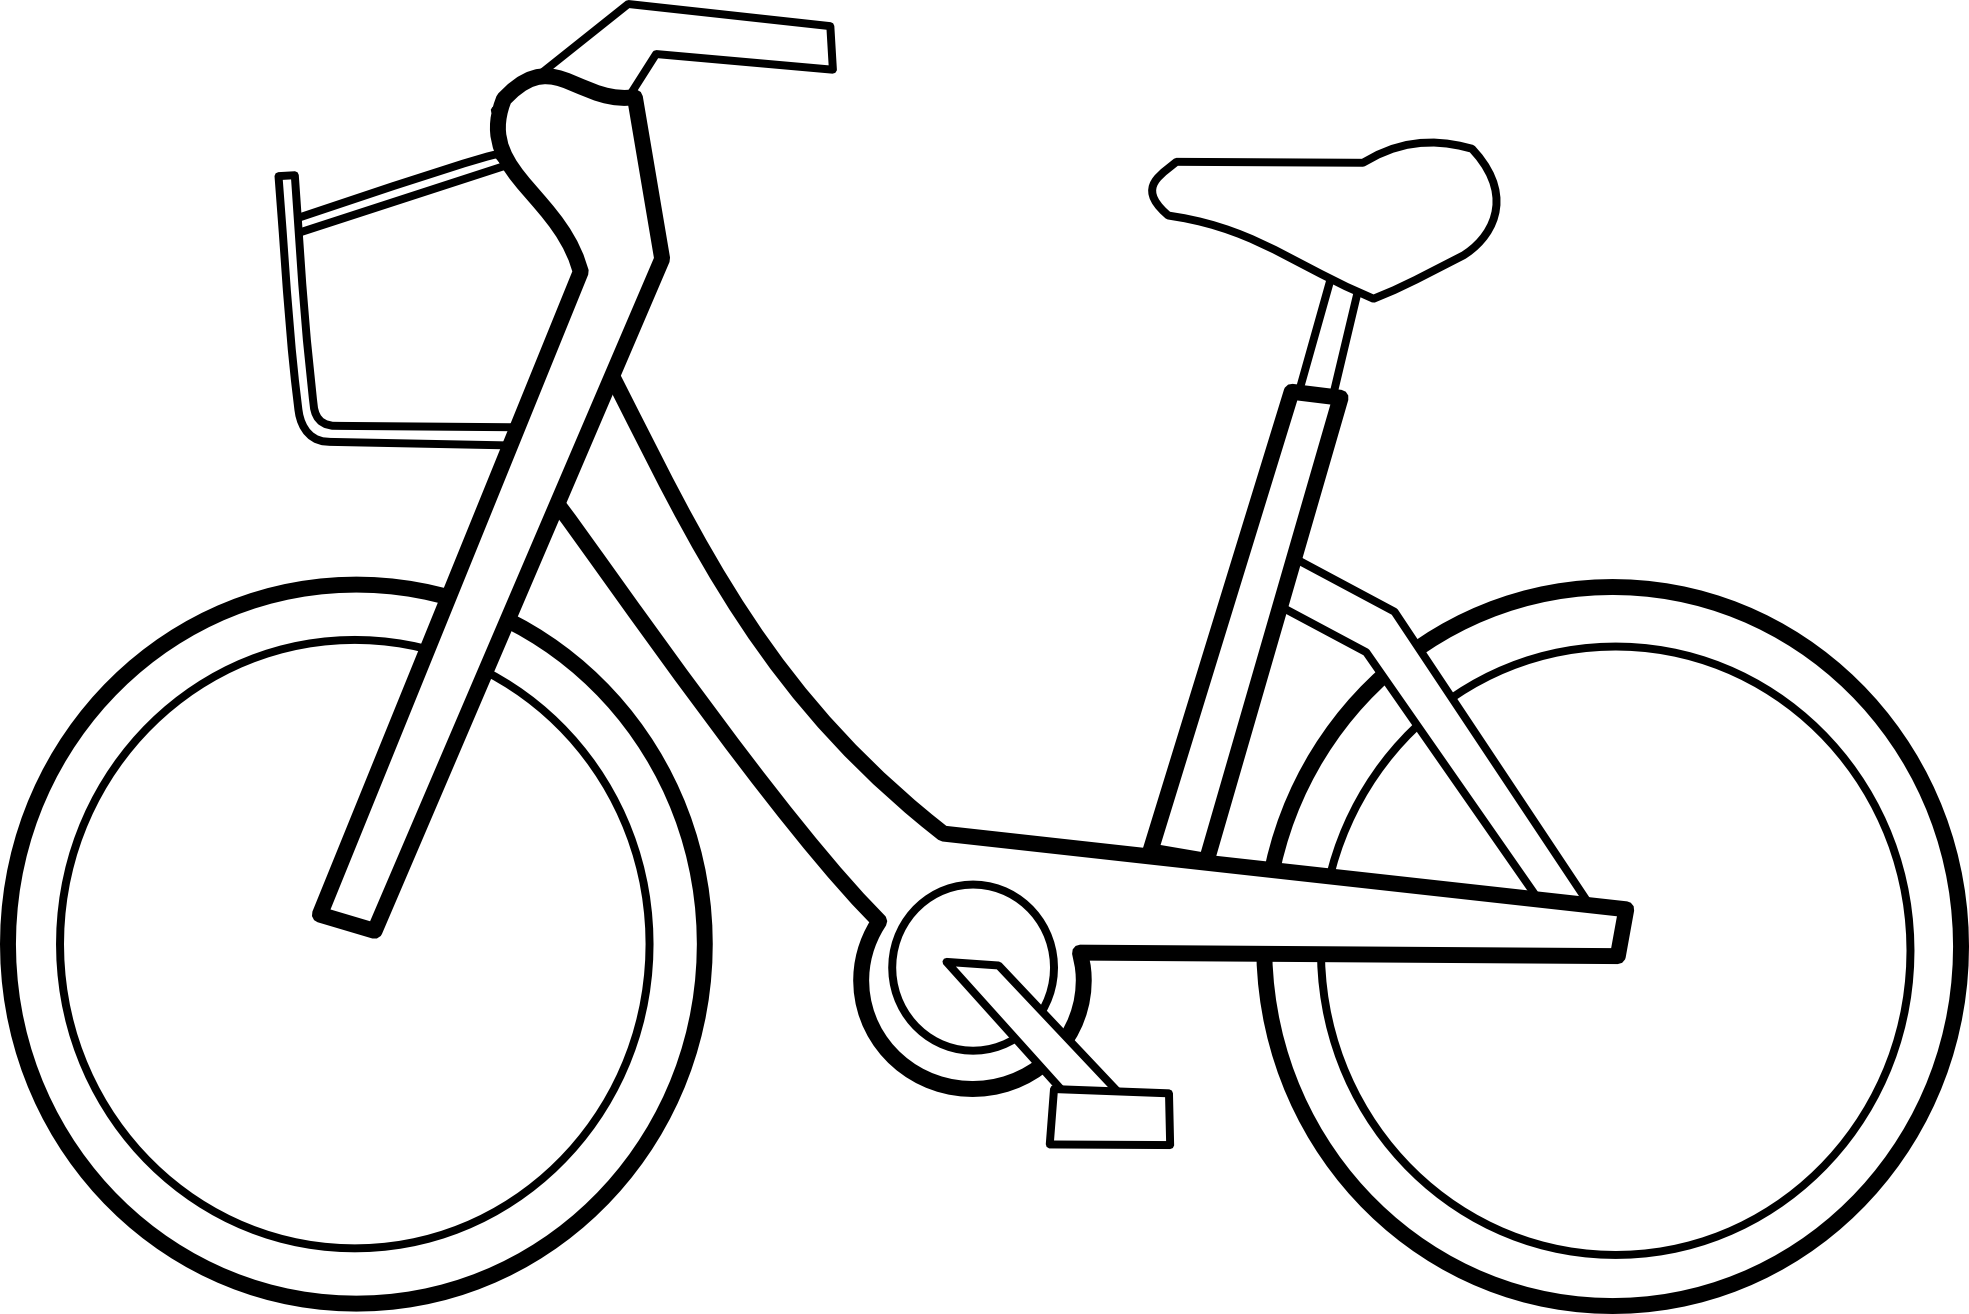 ... Bicyclette Bicycle Black White Line Art Scalable Vector Graphics SVG Inkscape Adobe Illustrator Clip Art Clipart Coloring Book Colouring 1969px.png ...